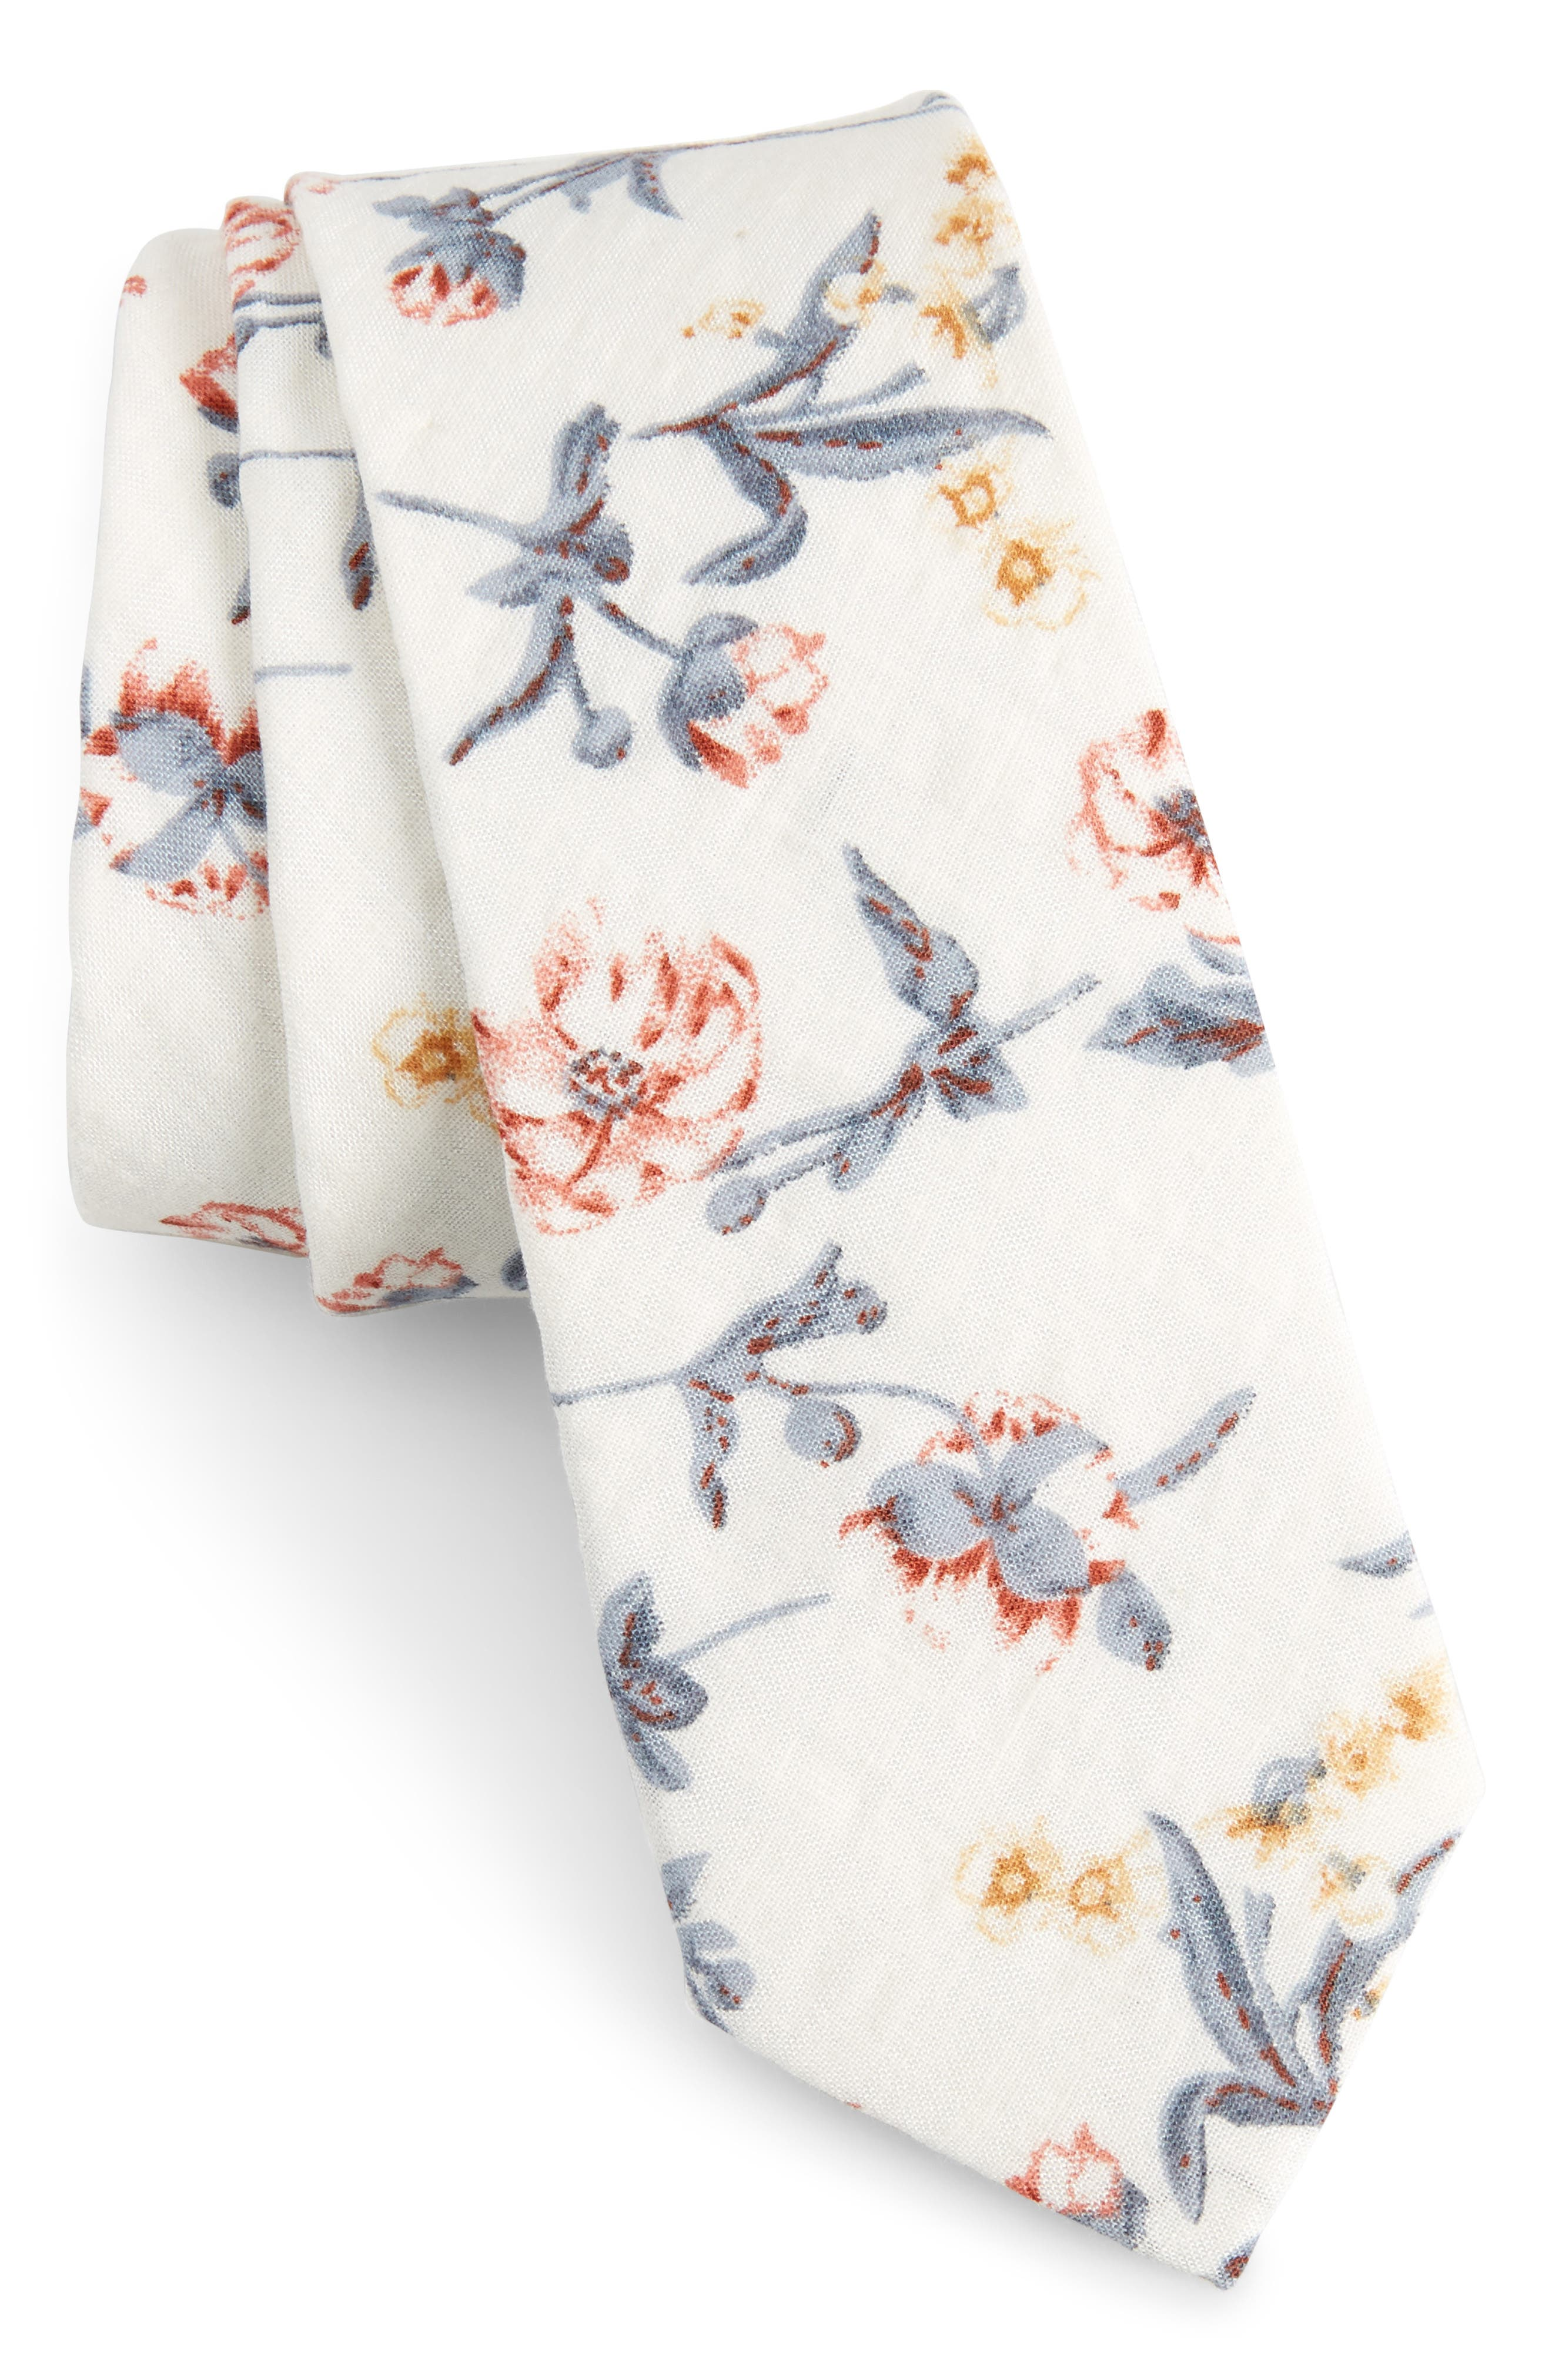 Nunley Floral Cotton Skinny Tie,                             Main thumbnail 1, color,                             White